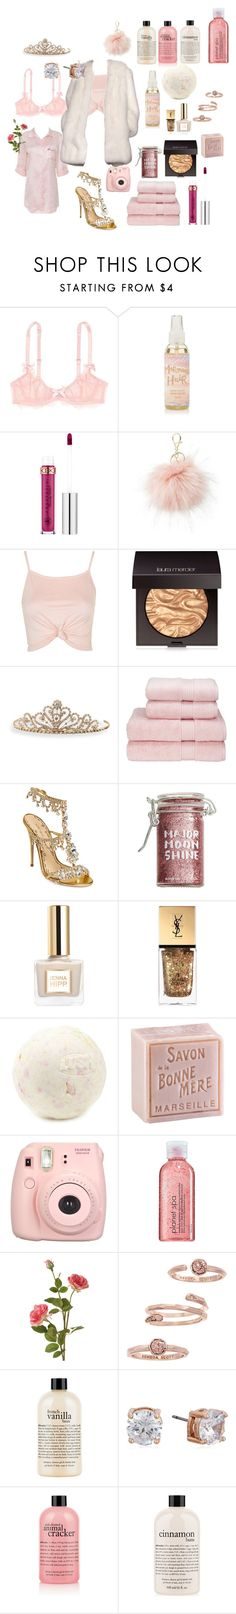 """pink lazy day idk"" by alcaddict ❤ liked on Polyvore featuring beauty, L'Agent By Agent Provocateur, Anastasia Beverly Hills, Charlotte Russe, Topshop, Laura Mercier, BillyTheTree, Christy, Marchesa and Major Moonshine"